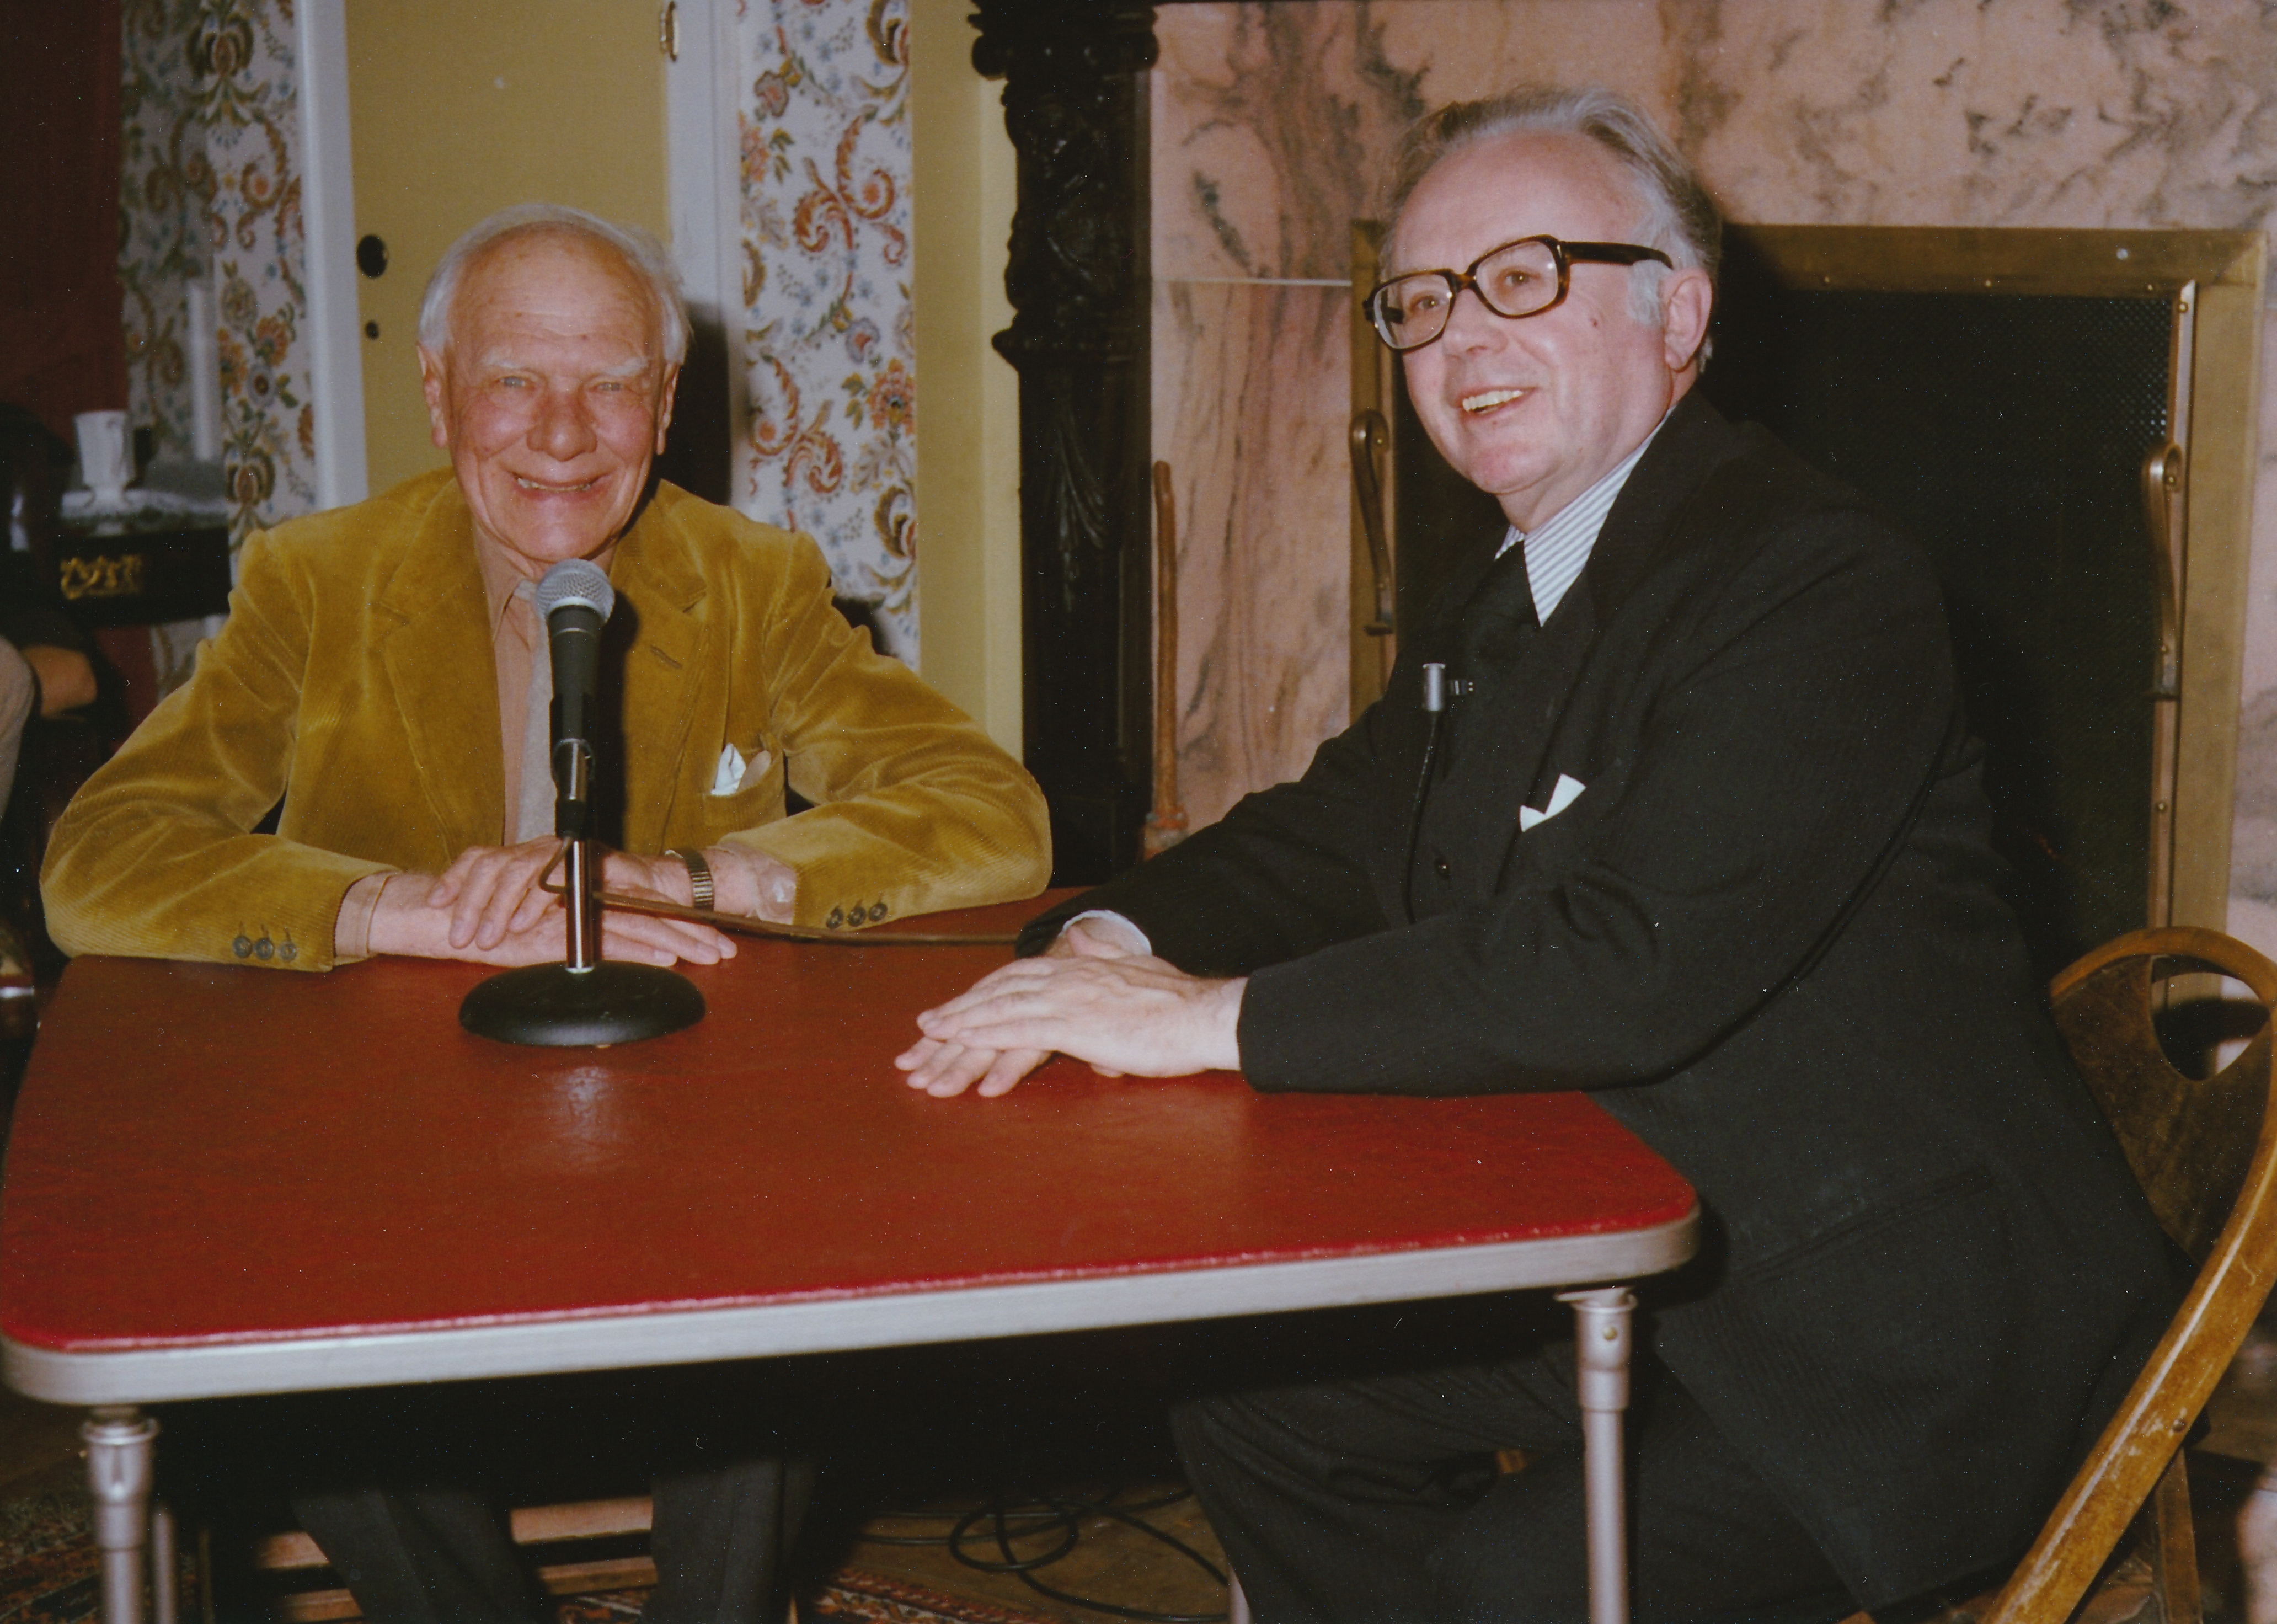 English journalist Malcolm Muggeridge and Kirk answering questions at the Kirk home.